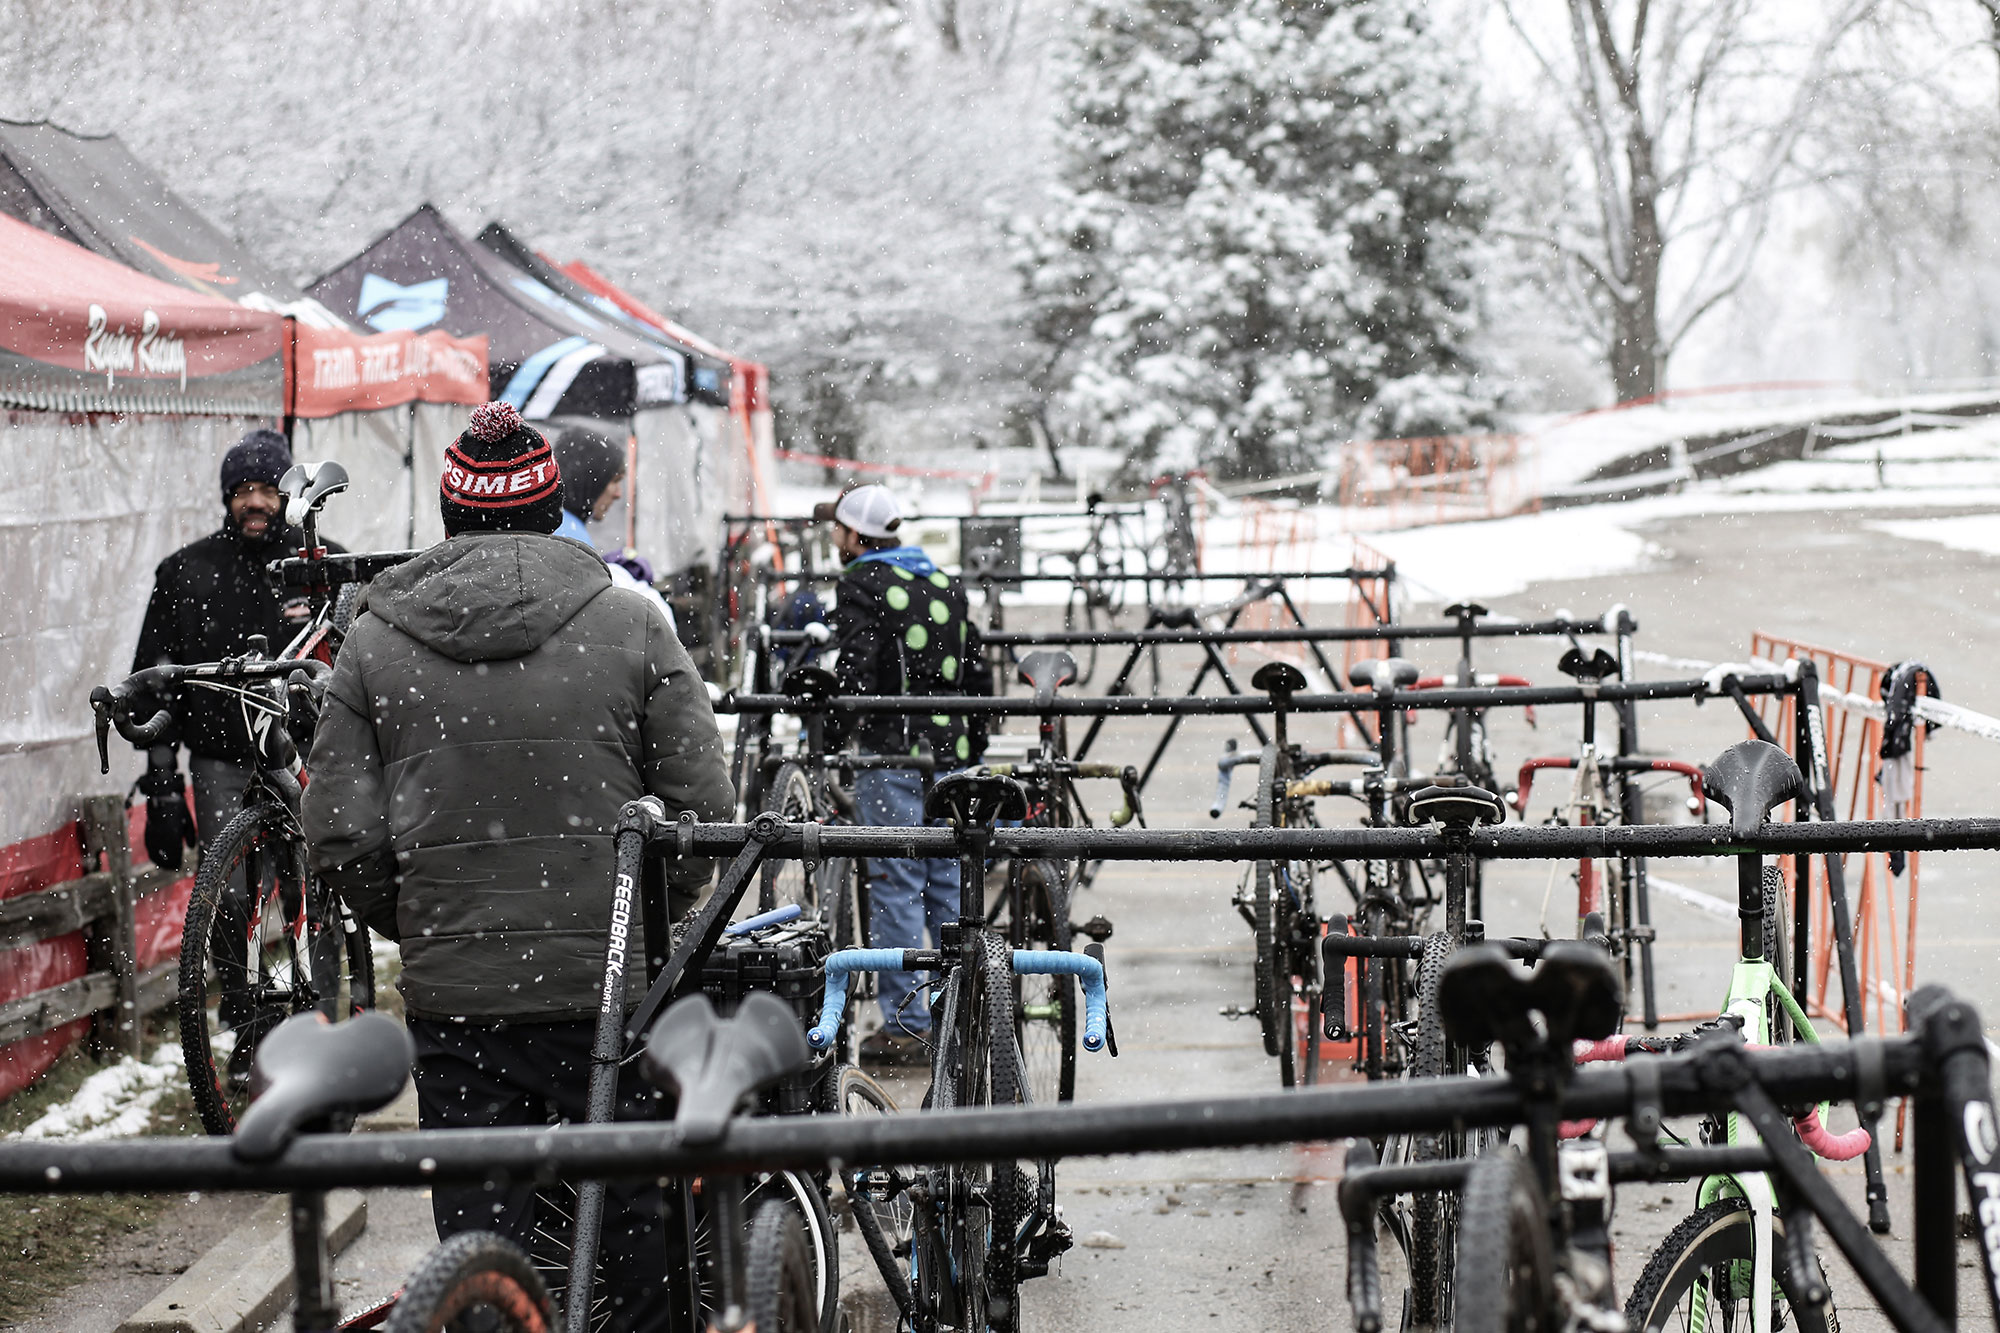 Chicago Cross Cup #9 – 2018